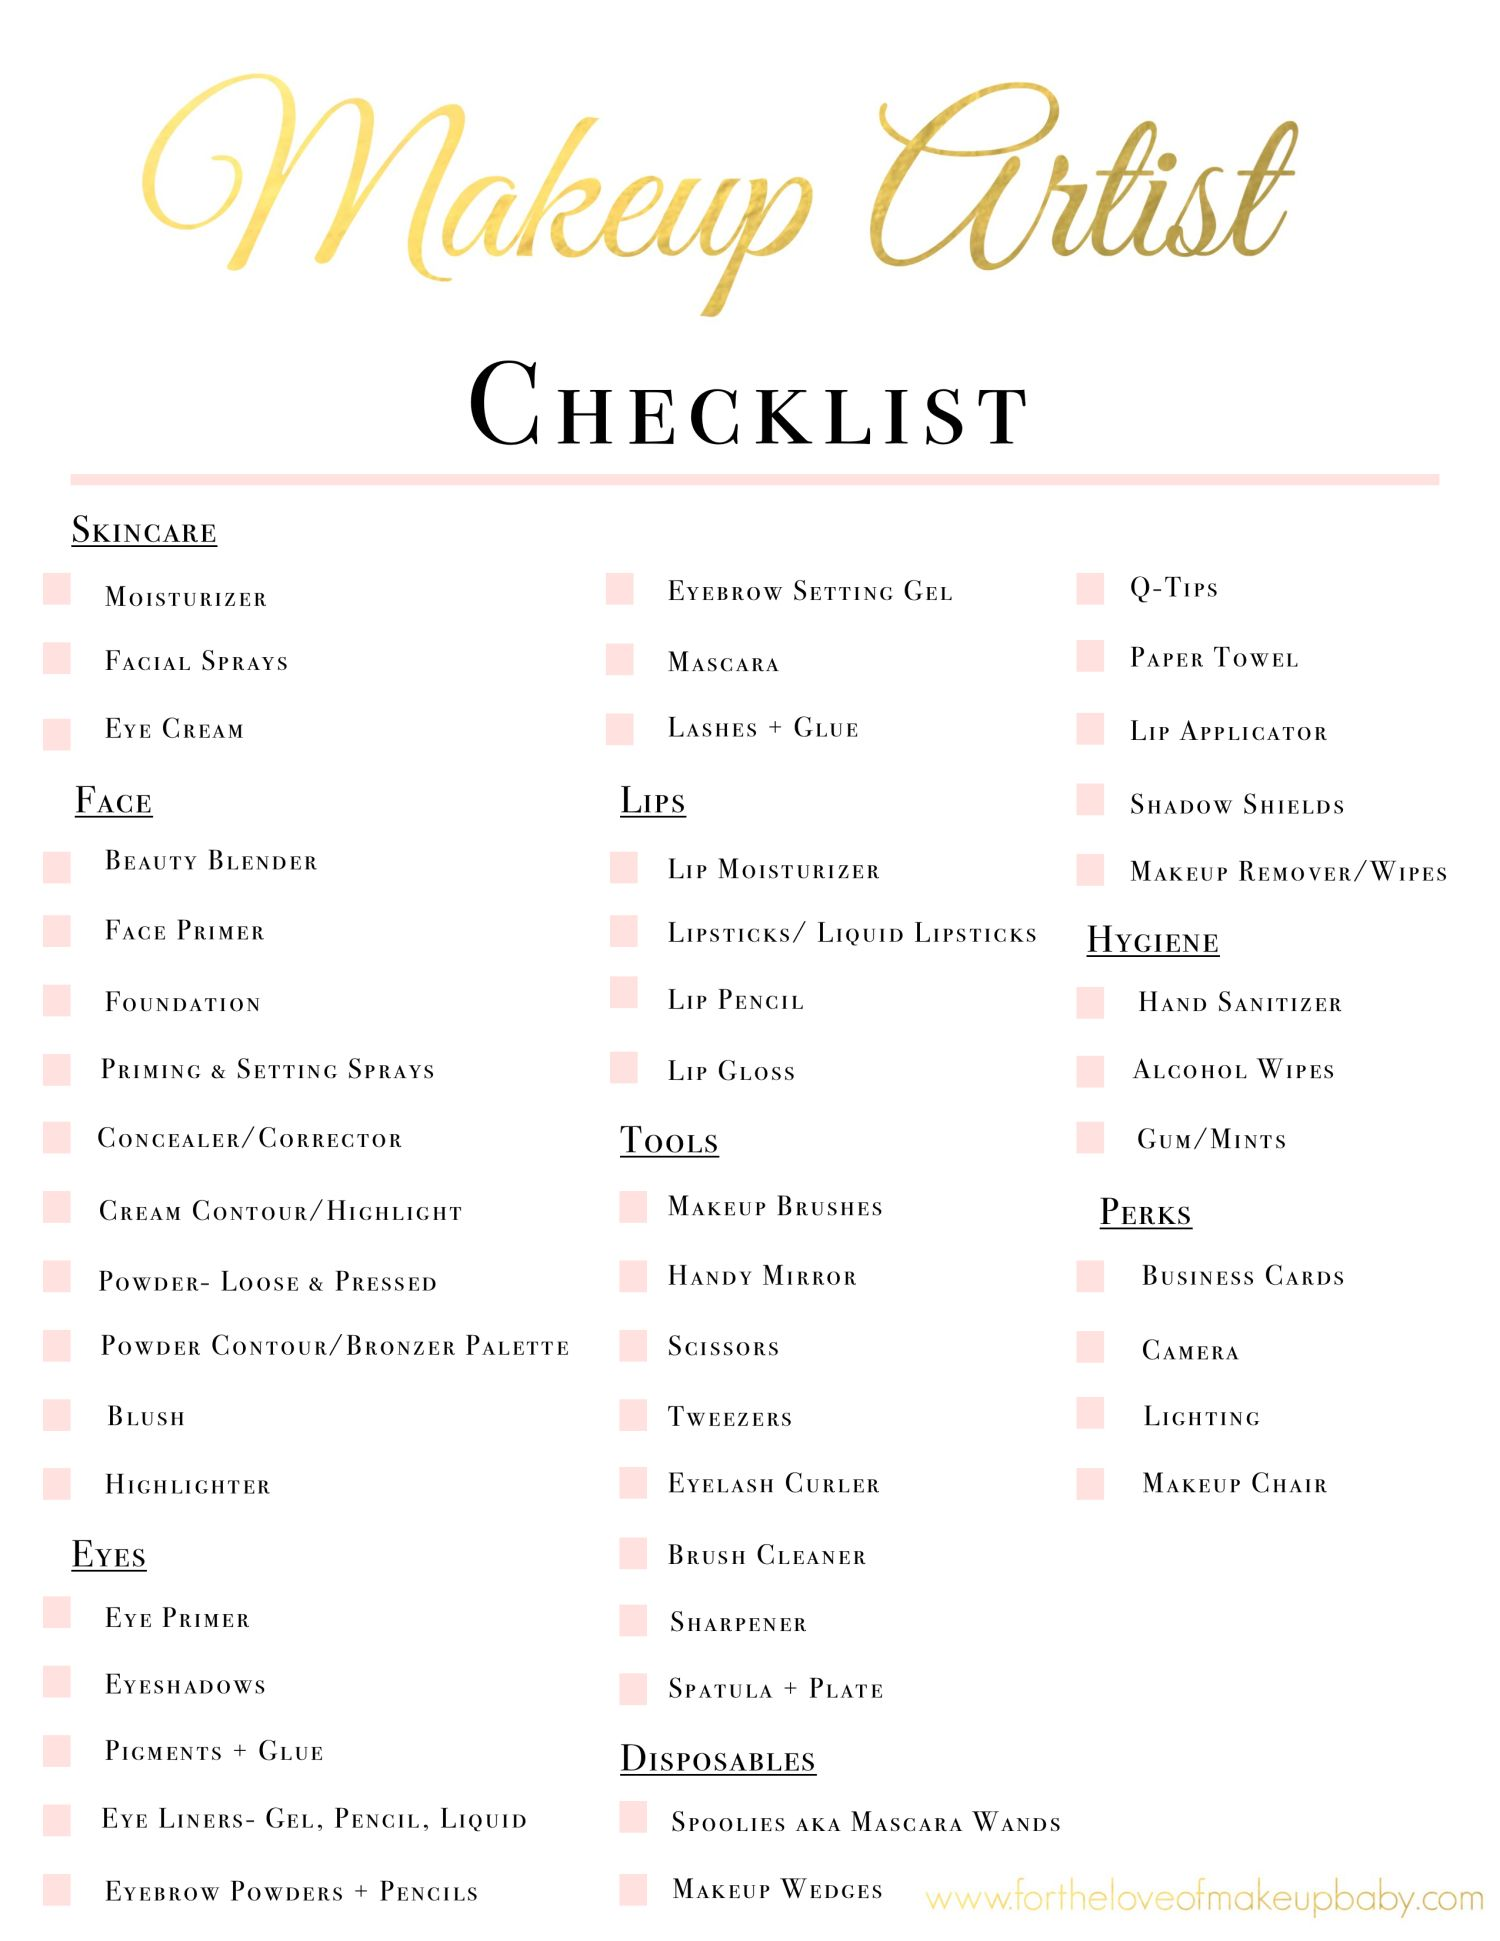 Makeup Artist Kit Checklist Makeup artist kit, Makeup